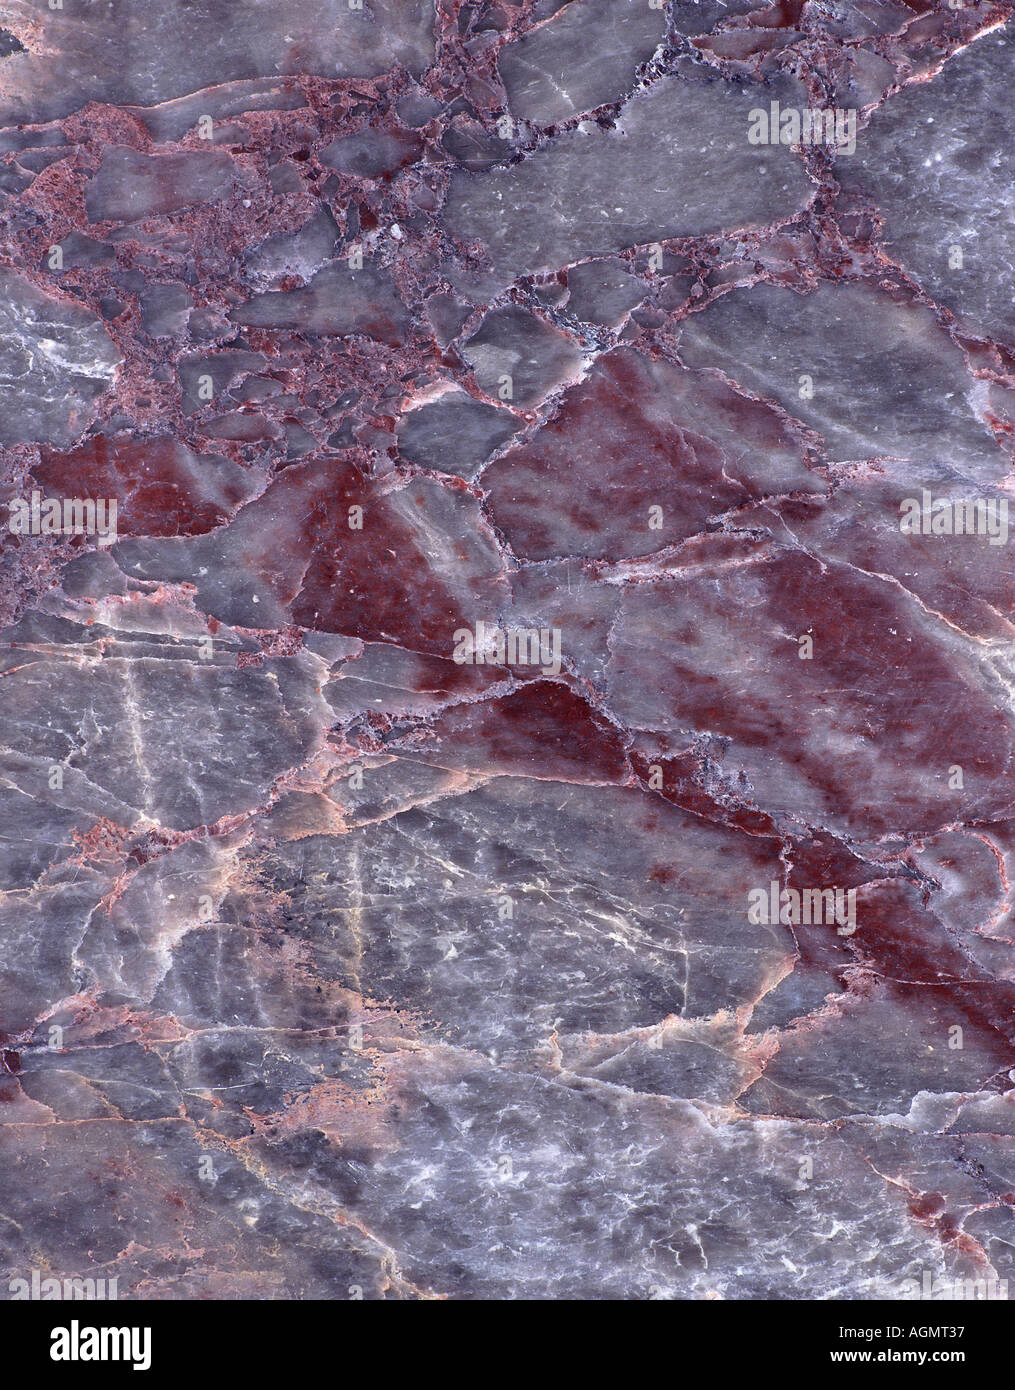 Background texture abstract marble italian french spanish background texture abstract marble italian french spanish countertop floor design tile bathroom sink kitchen grey purple red mar dailygadgetfo Choice Image